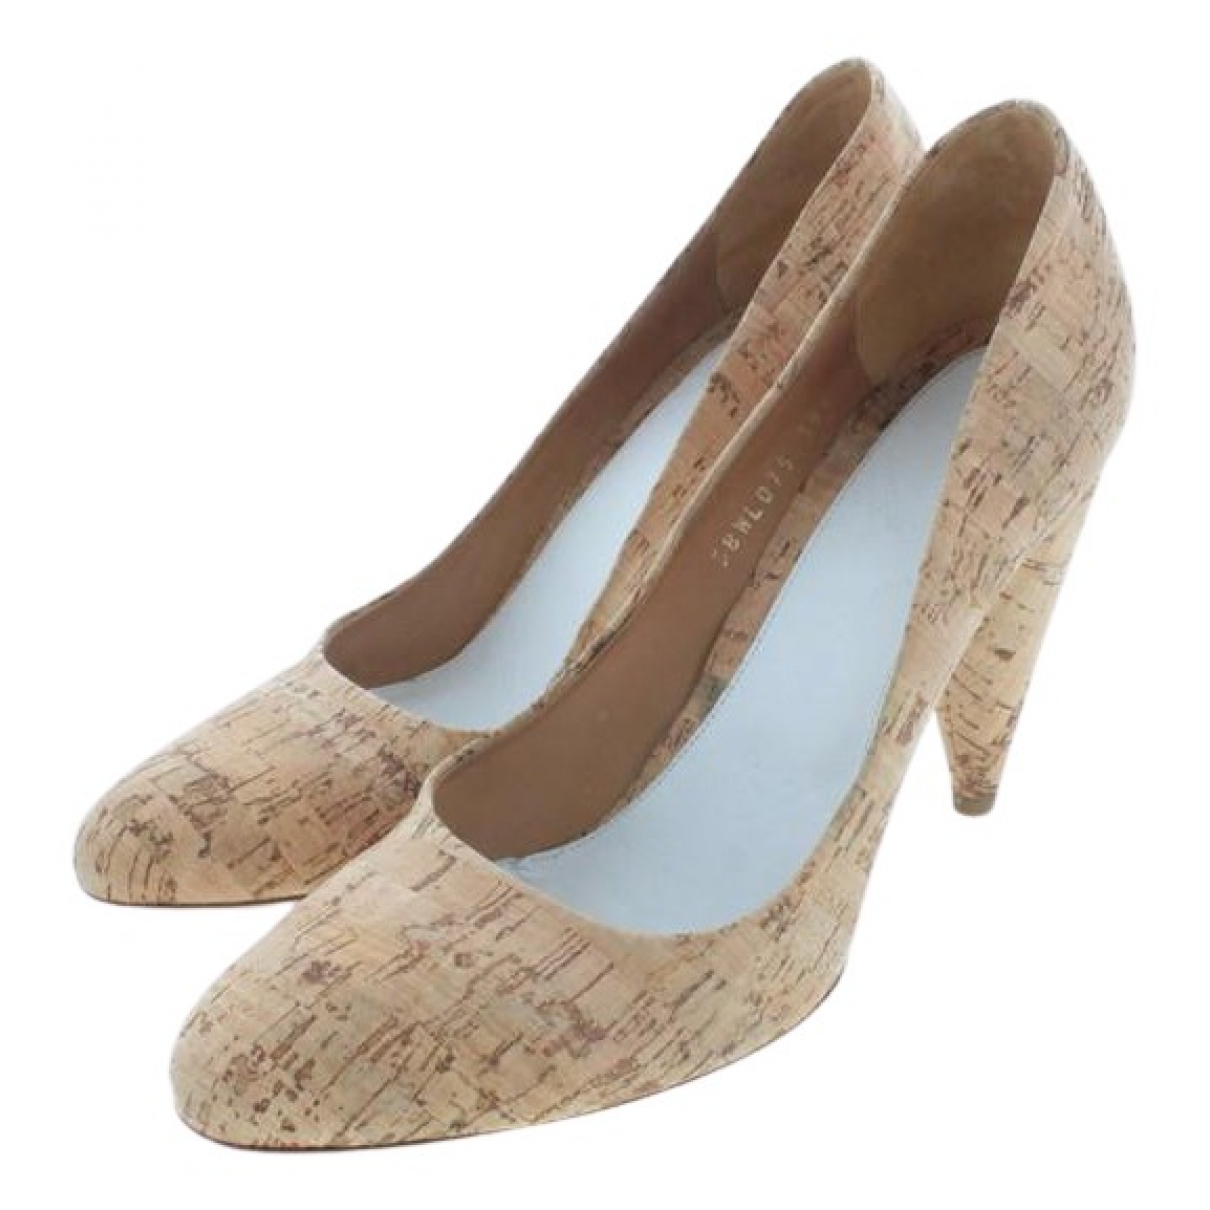 Maison Martin Margiela N Beige Cloth Heels for Women 39.5 EU